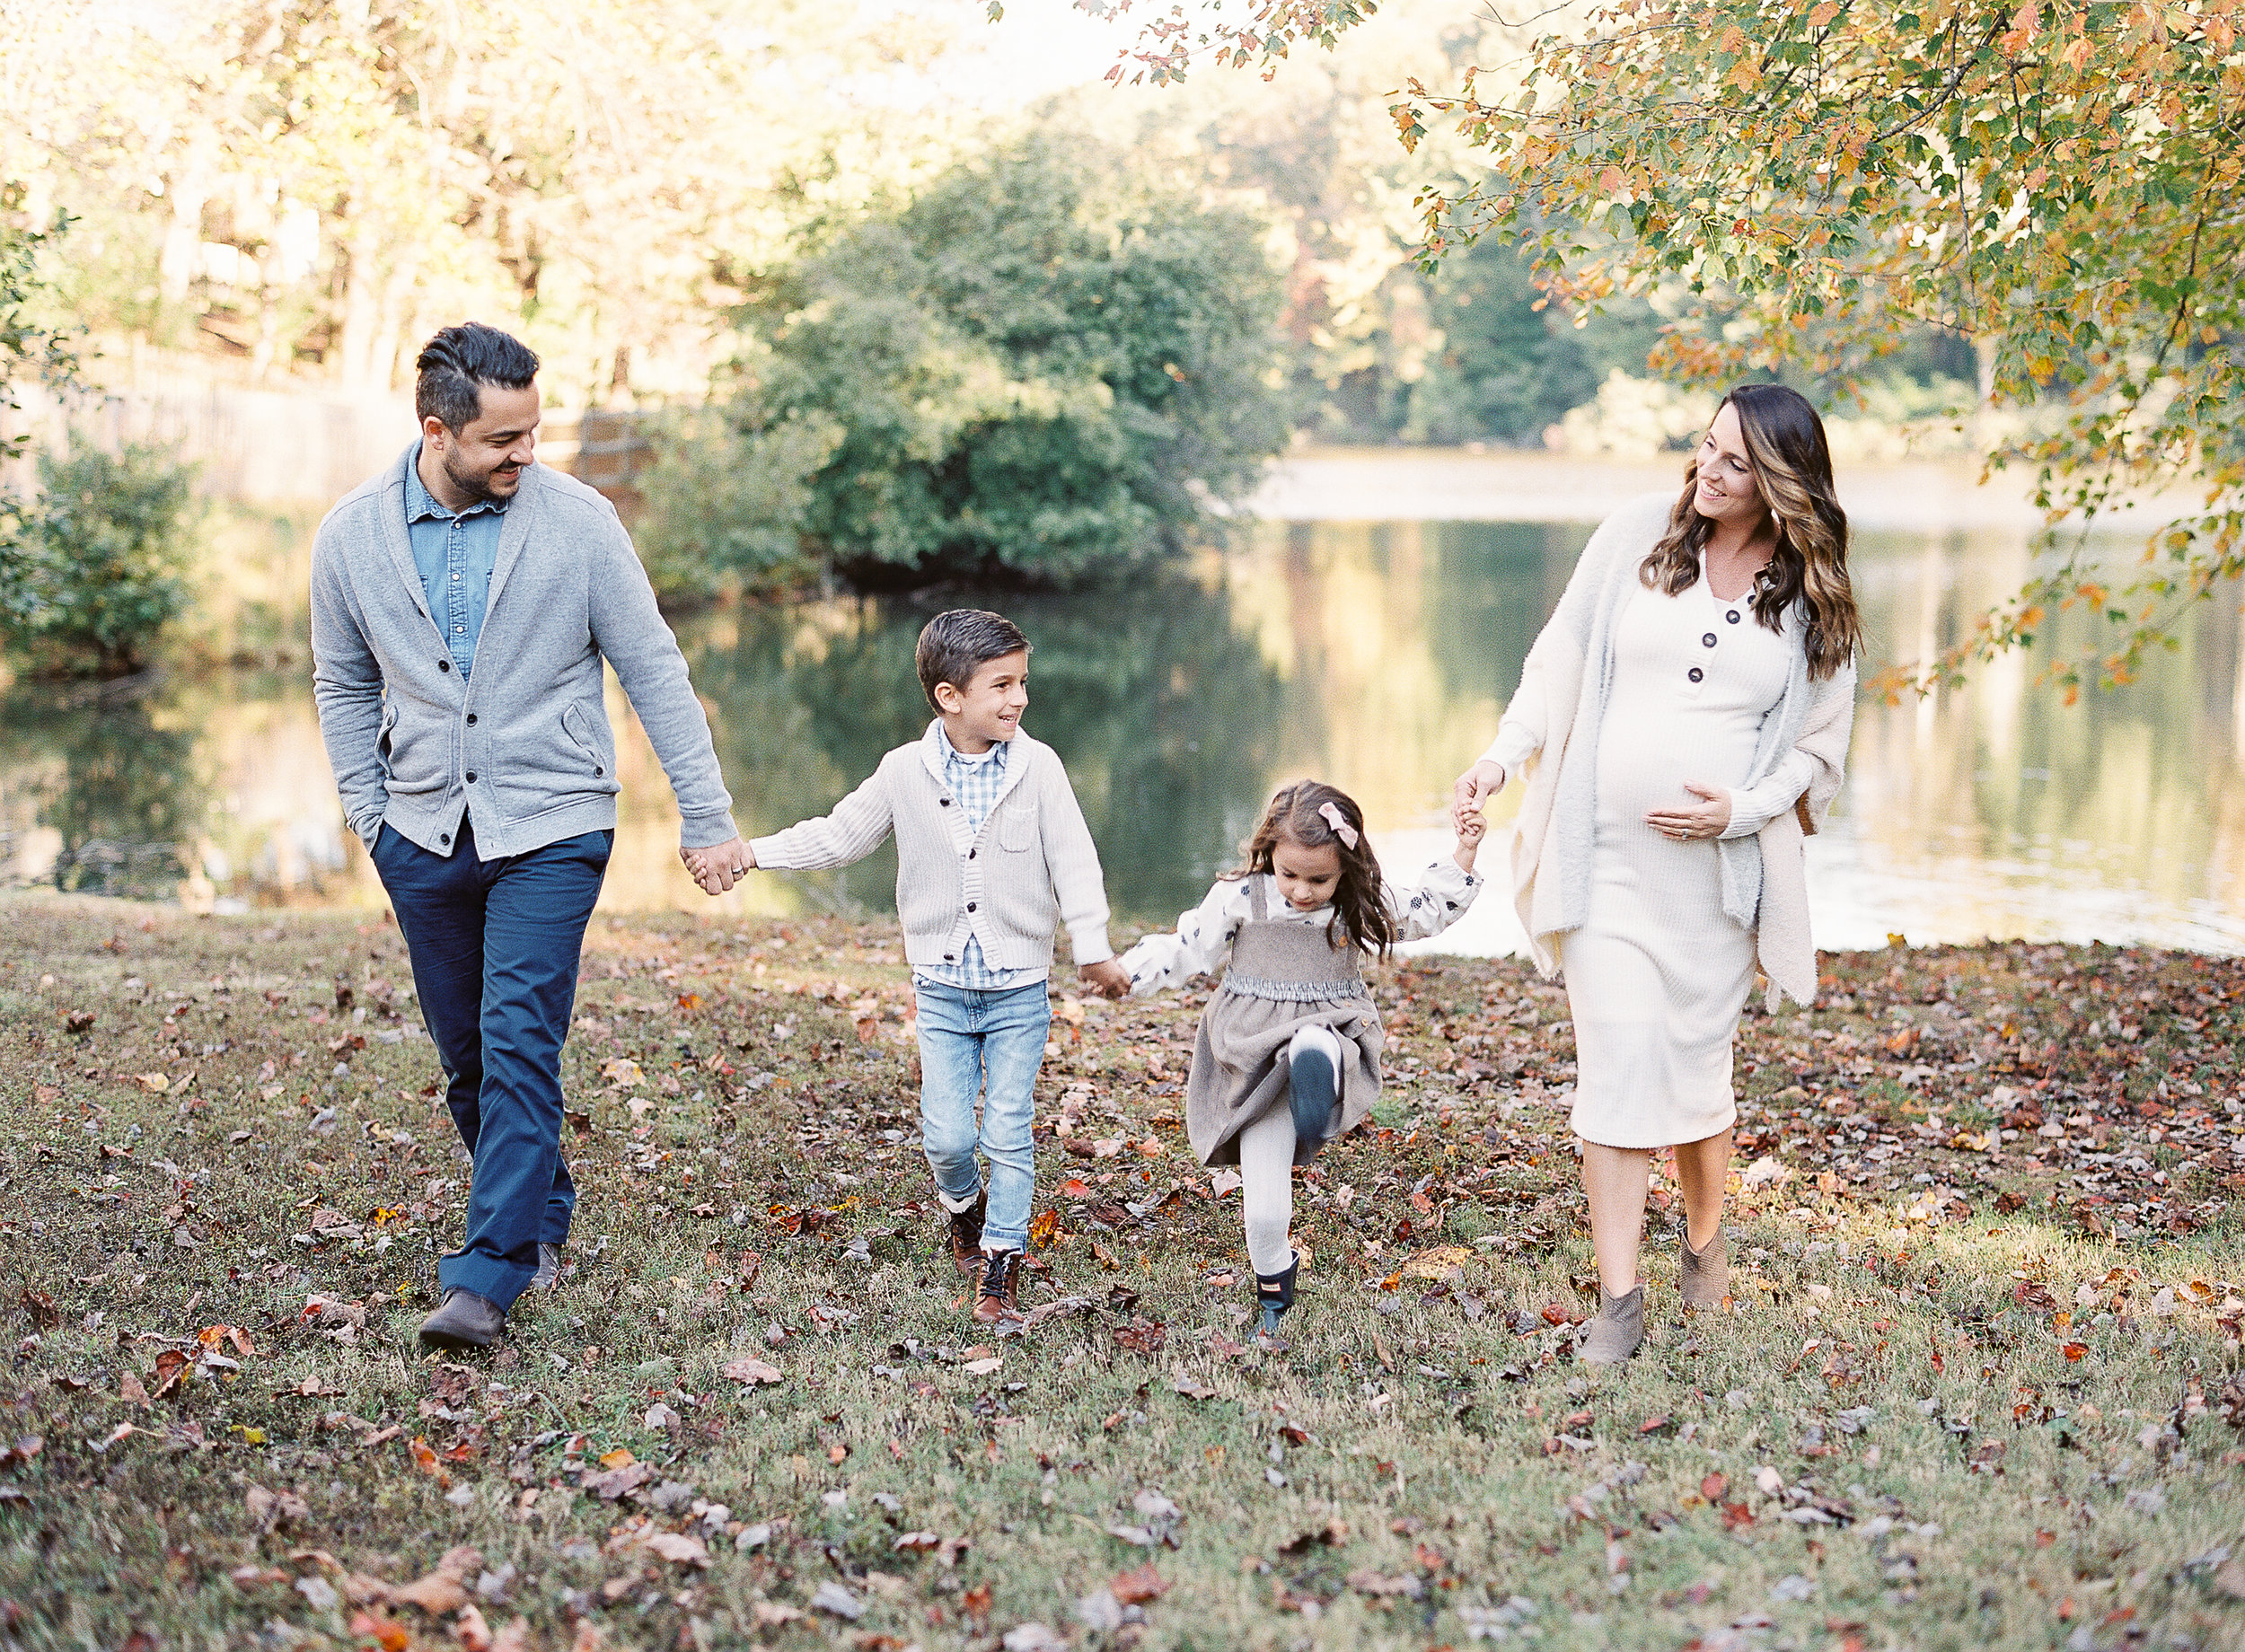 atlanta-georgia-family-photographer-fine-art-film-hannah-forsberg-46.jpg